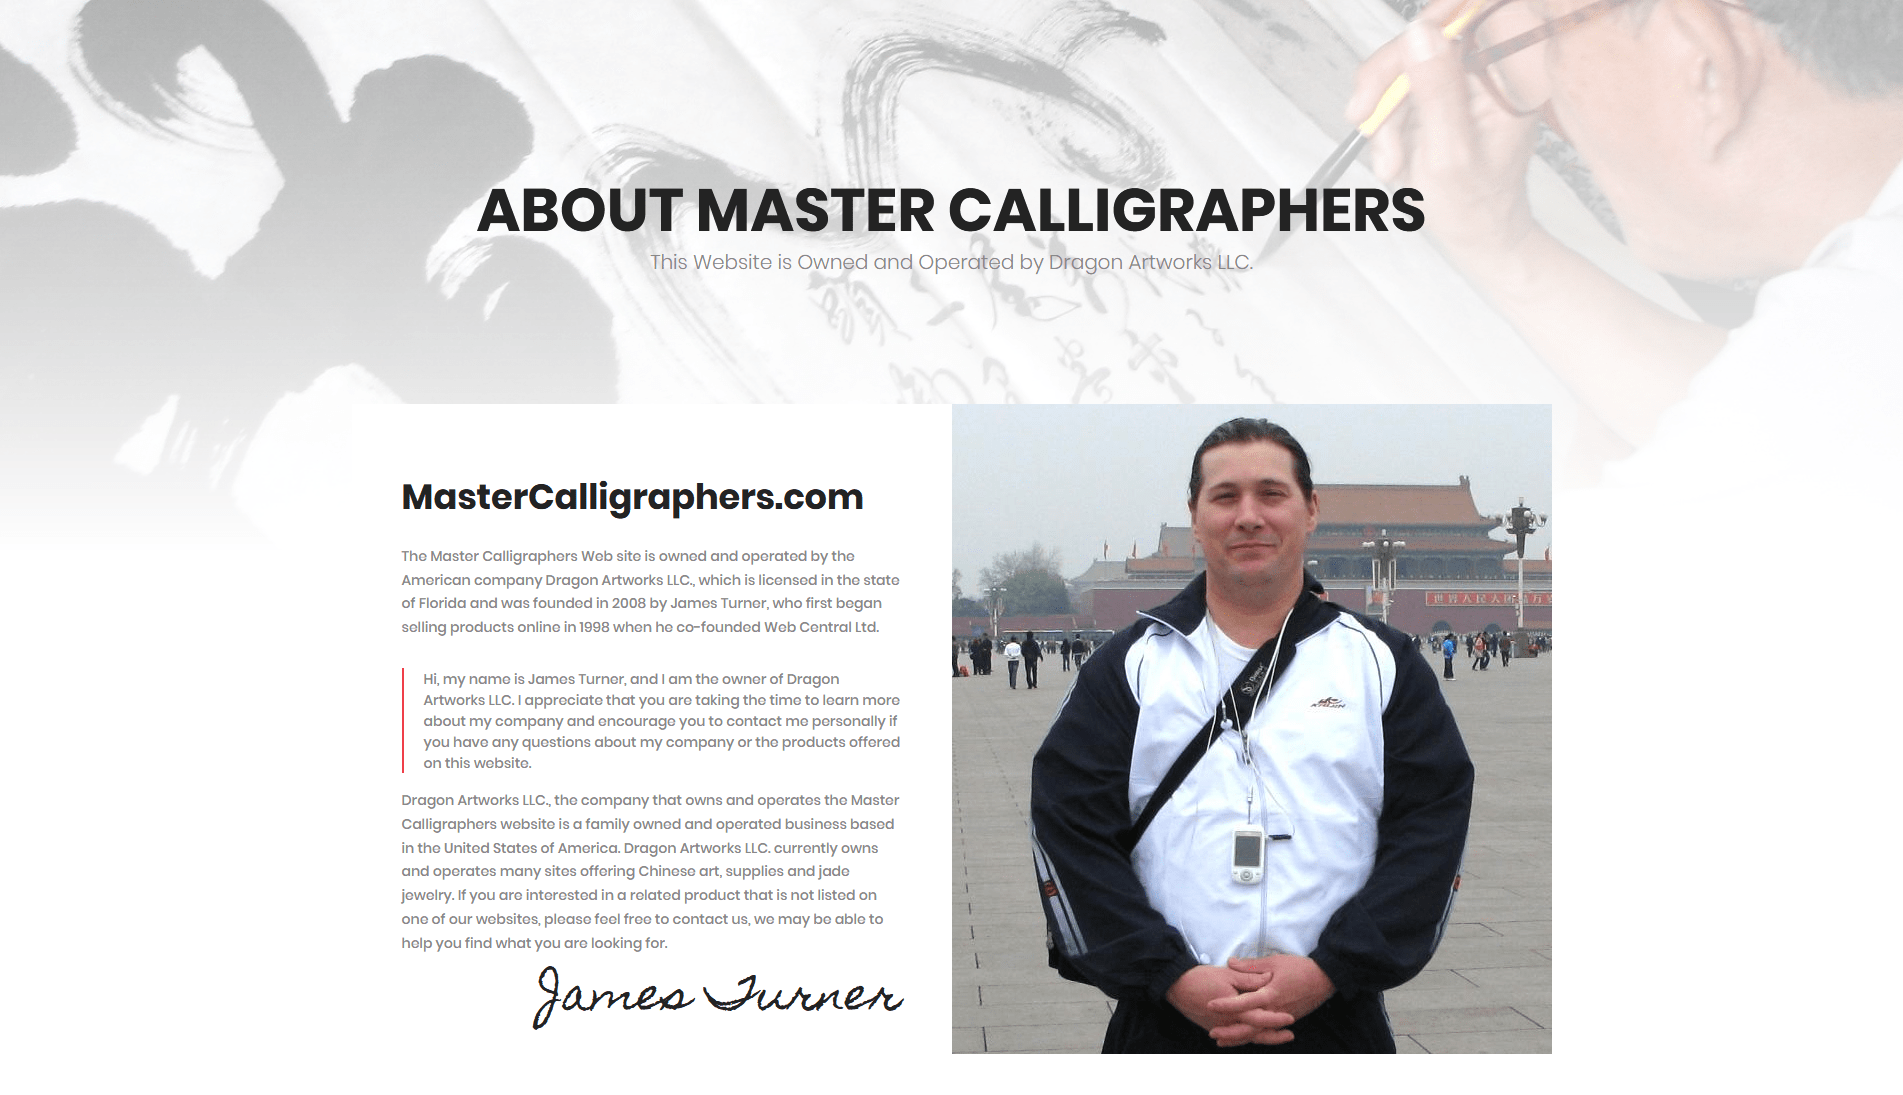 Master Calligraphers Website About Us Section